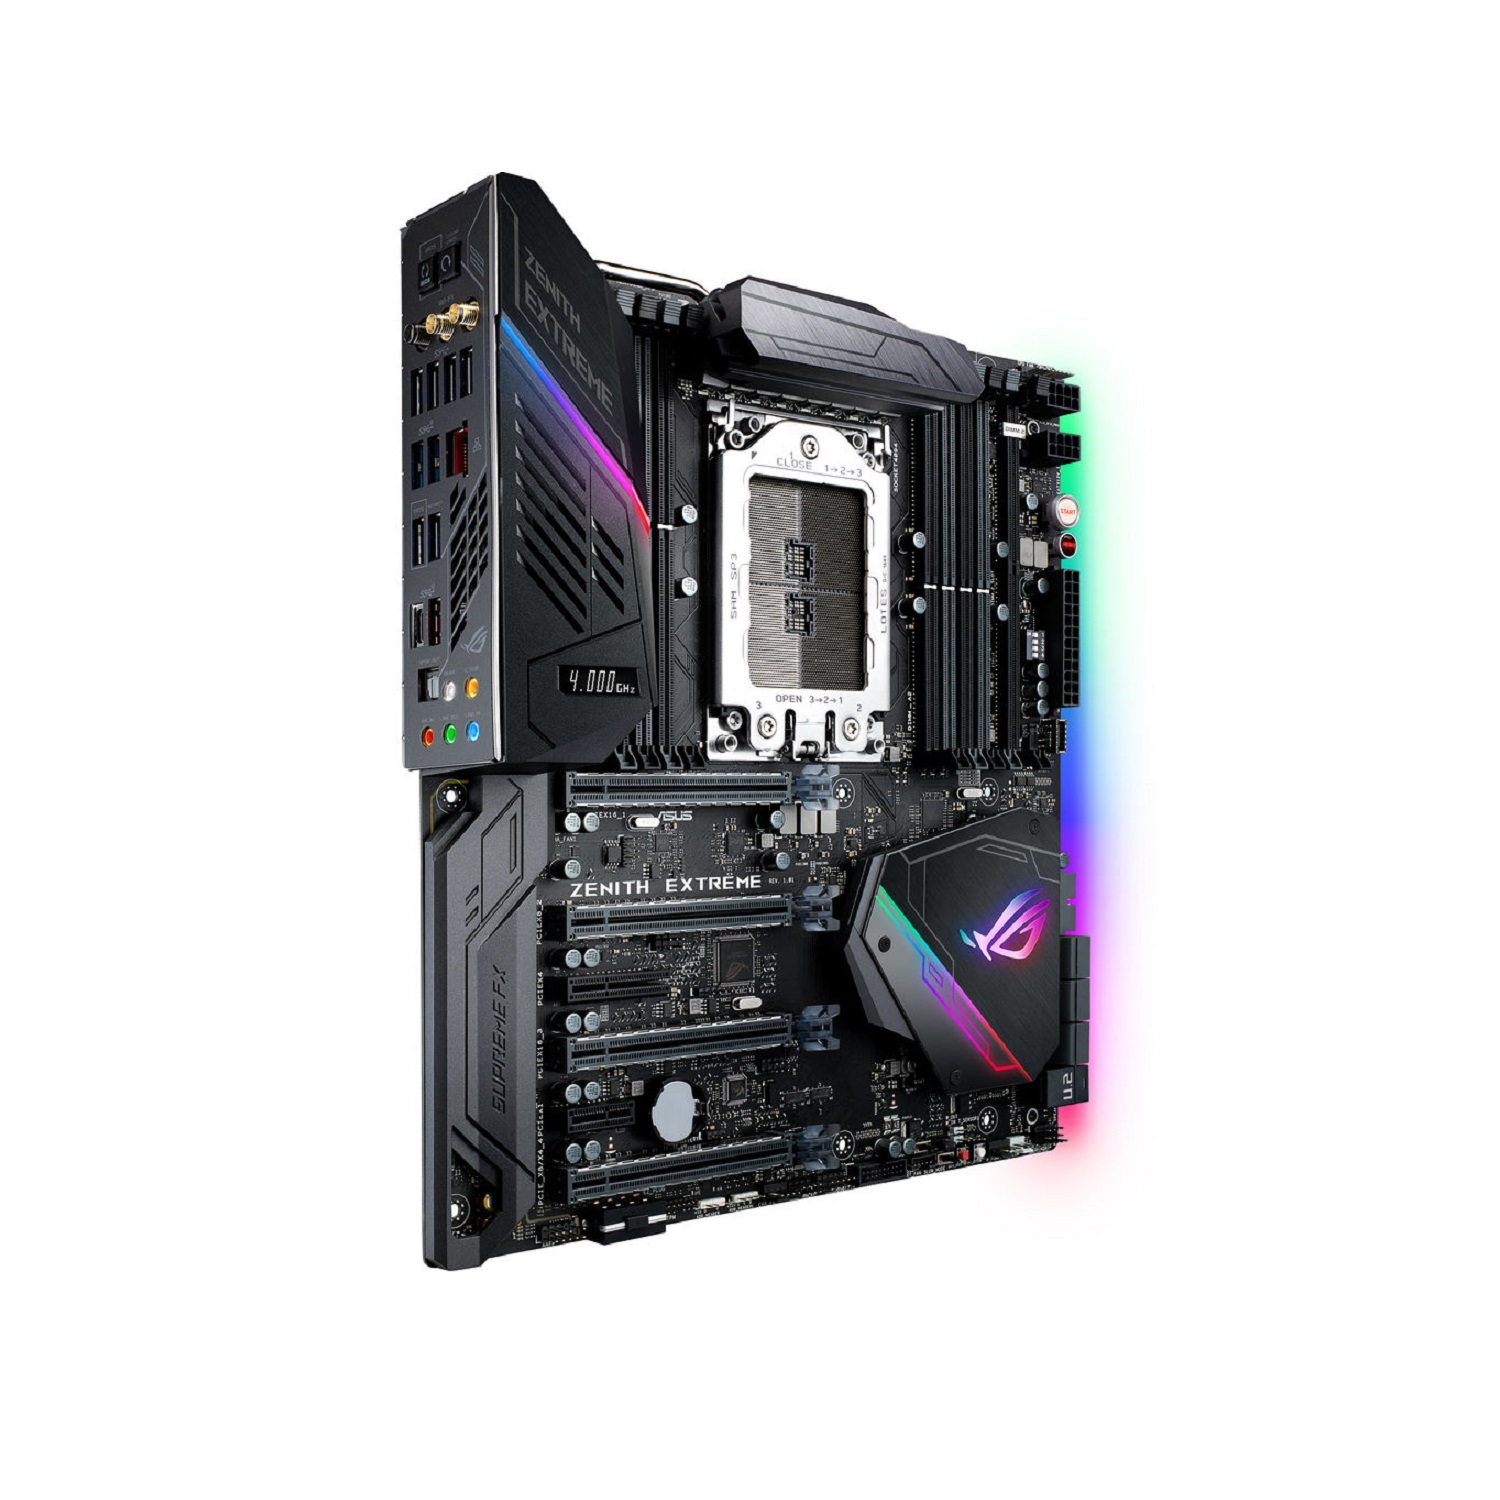 Asus ROG Zenith Extreme Motherboard by ASUS